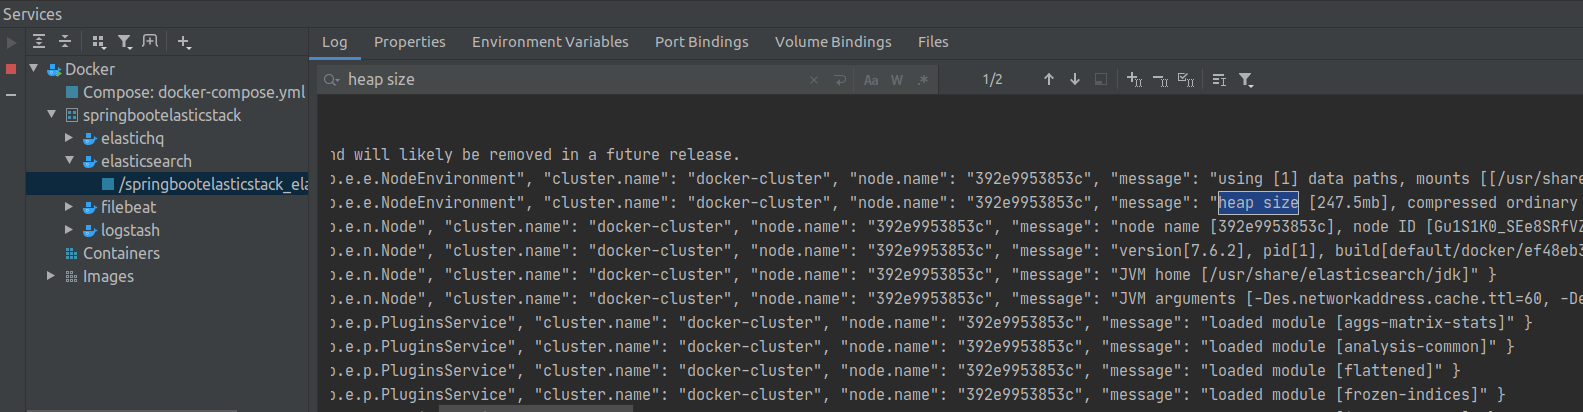 browsing logs with docker plugin in inteliJ screenshot